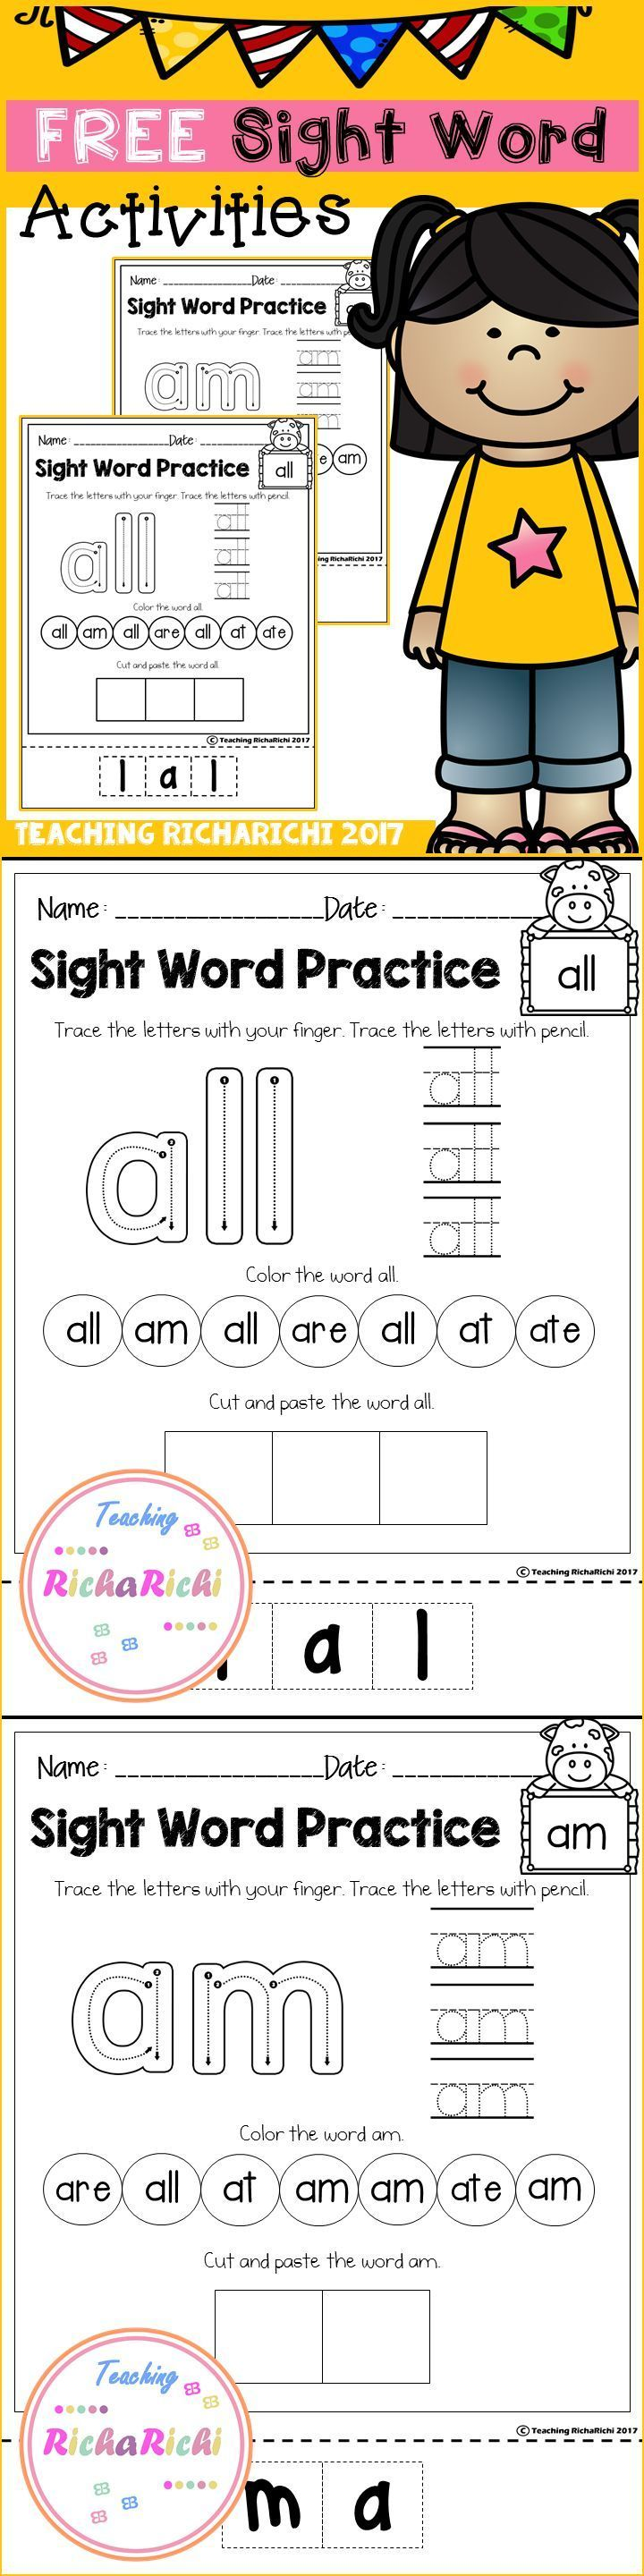 Best 25 sight word worksheets ideas on pinterest sight words freebies free kindergarten activities free pre k activities free first grade activities pre k kindergarten 1st grade first grade sight word robcynllc Gallery